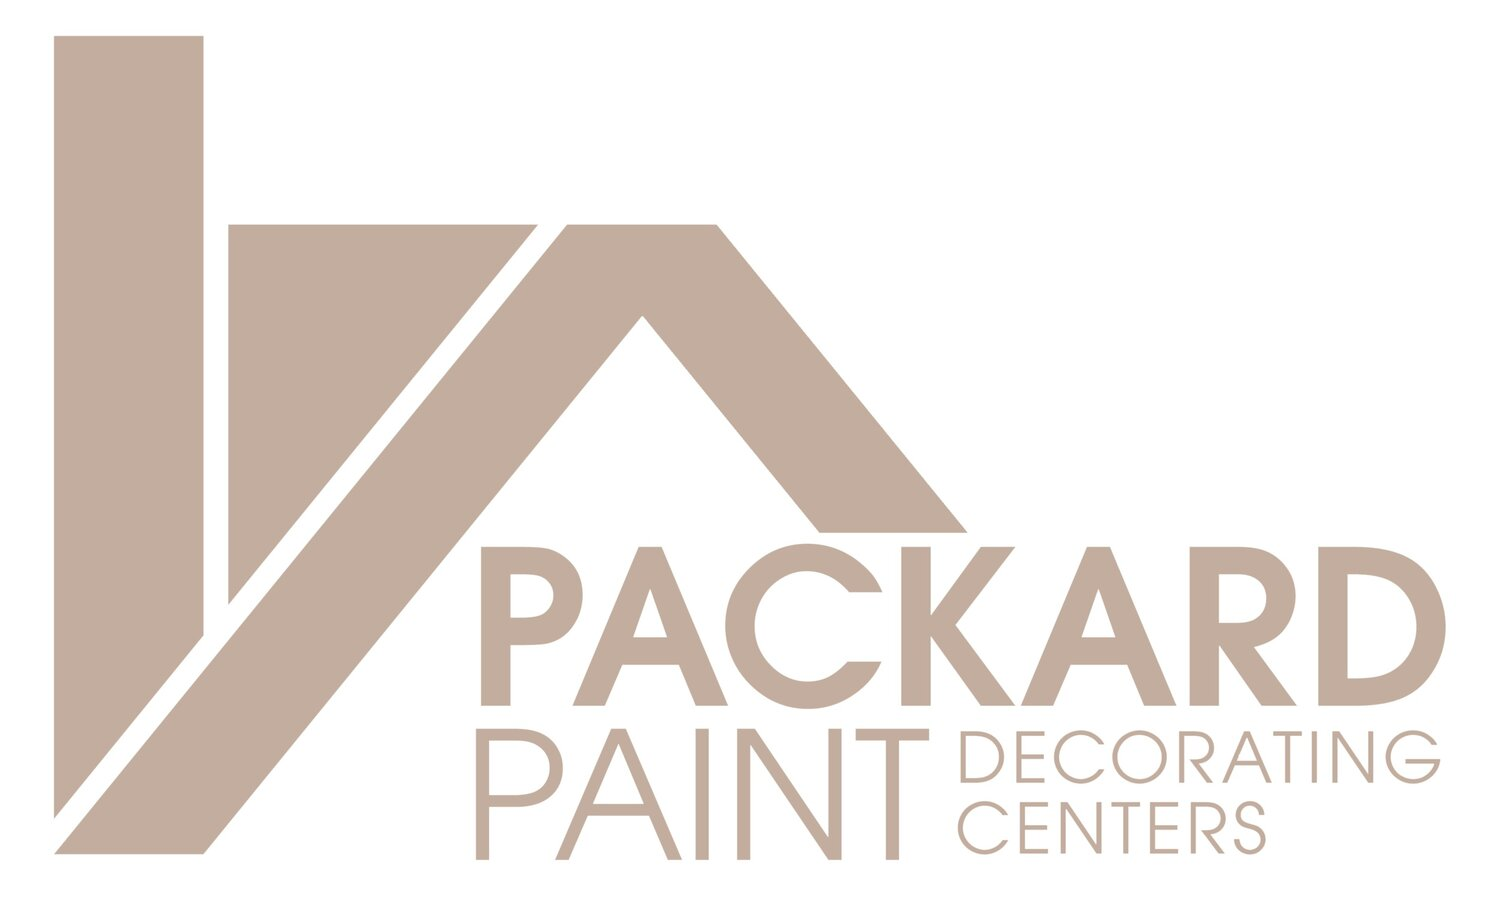 Packard Paint